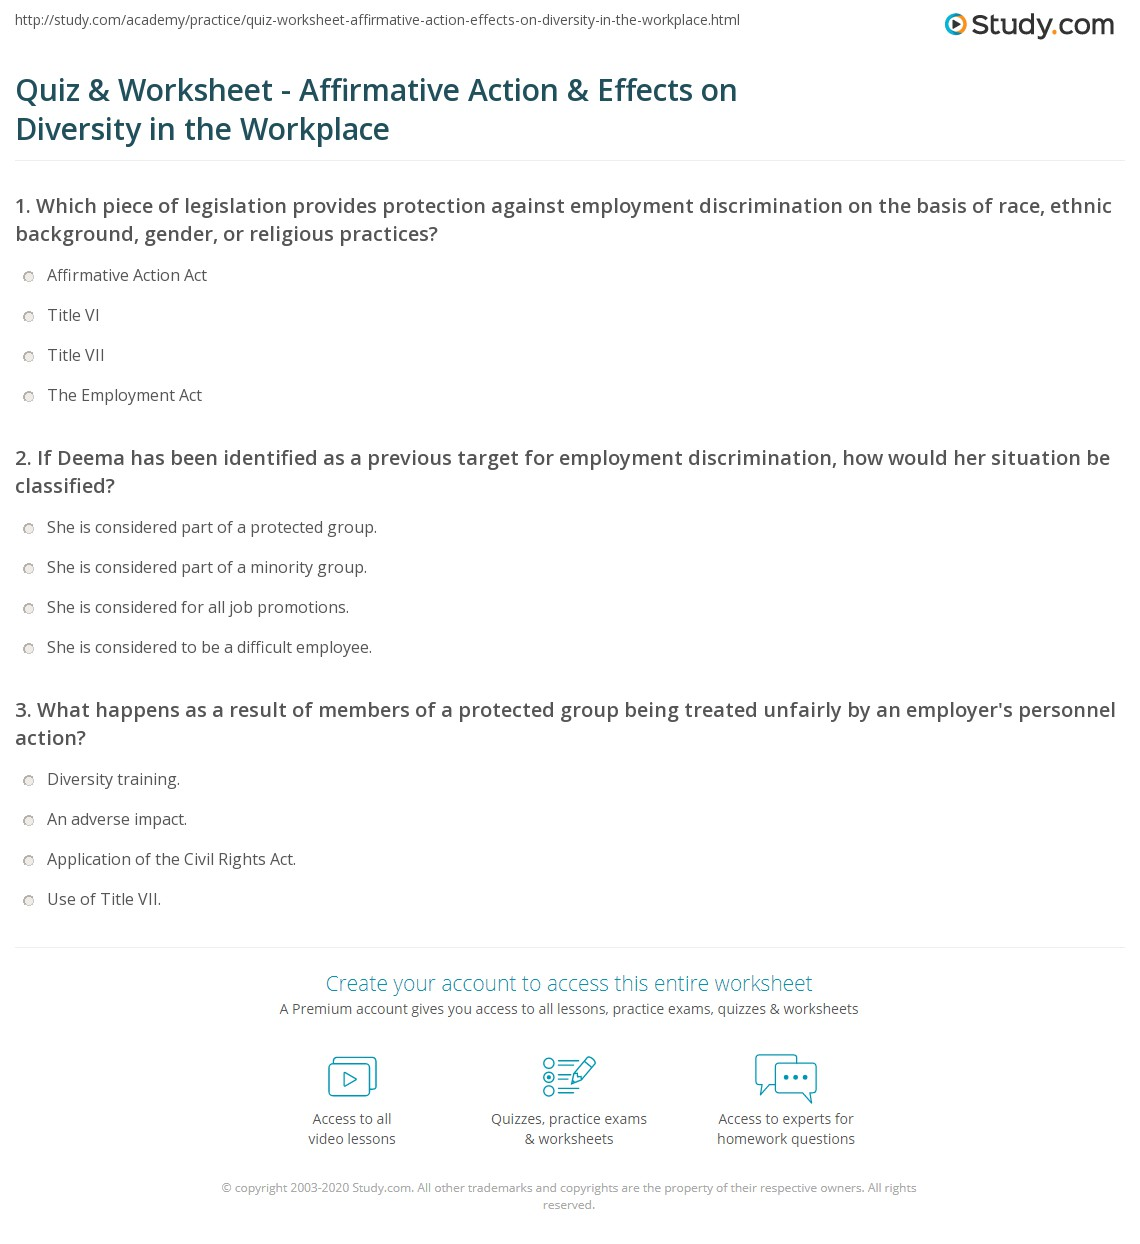 quiz & worksheet - affirmative action & effects on diversity in the